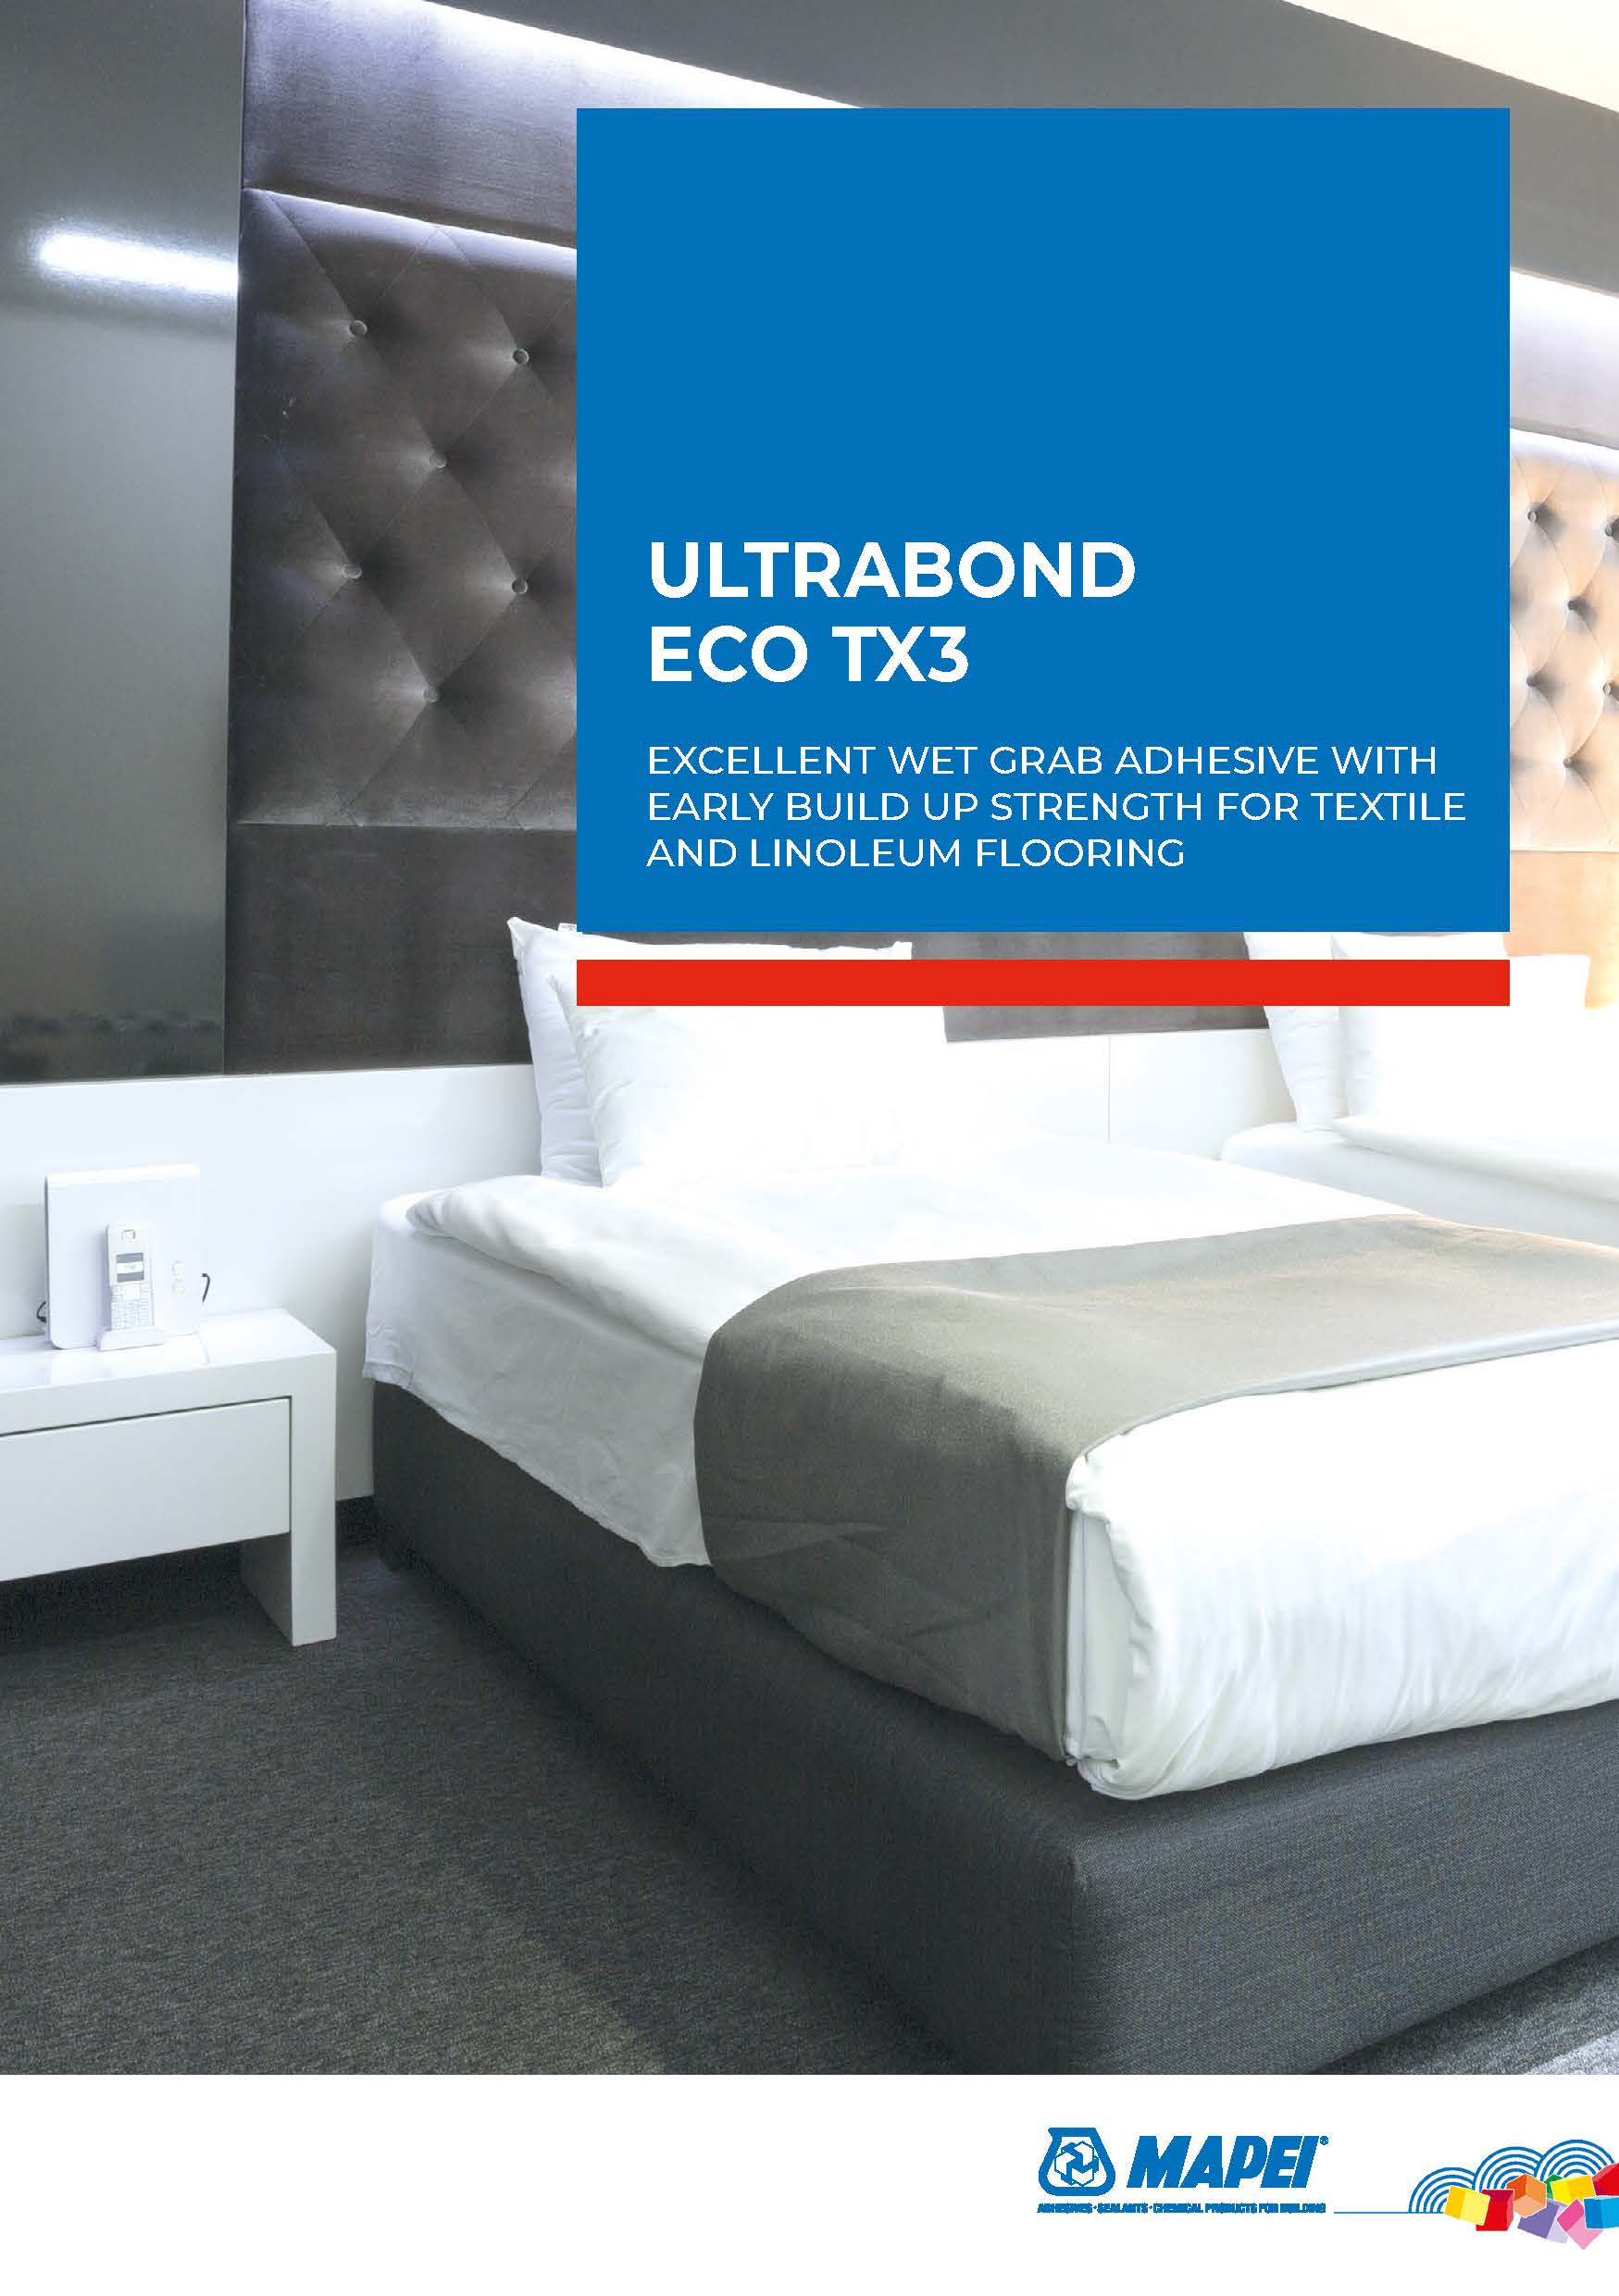 ULTRABOND ECO TX3